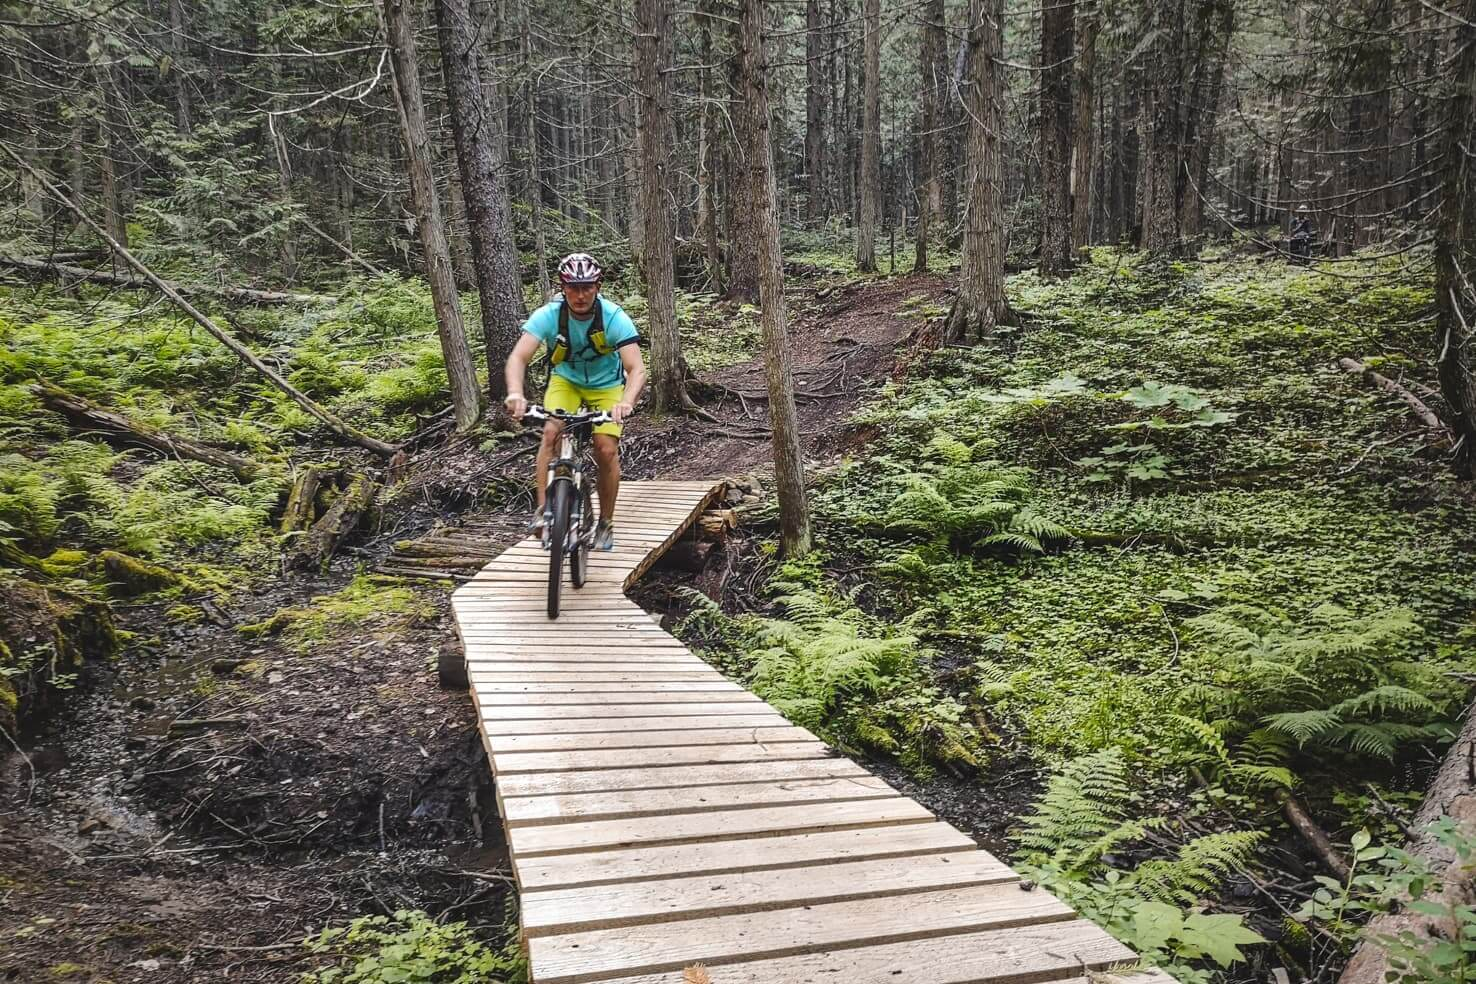 Things to do in Fernie, BC - 7 Downhill bike the iconic Lazy Lizard Trail